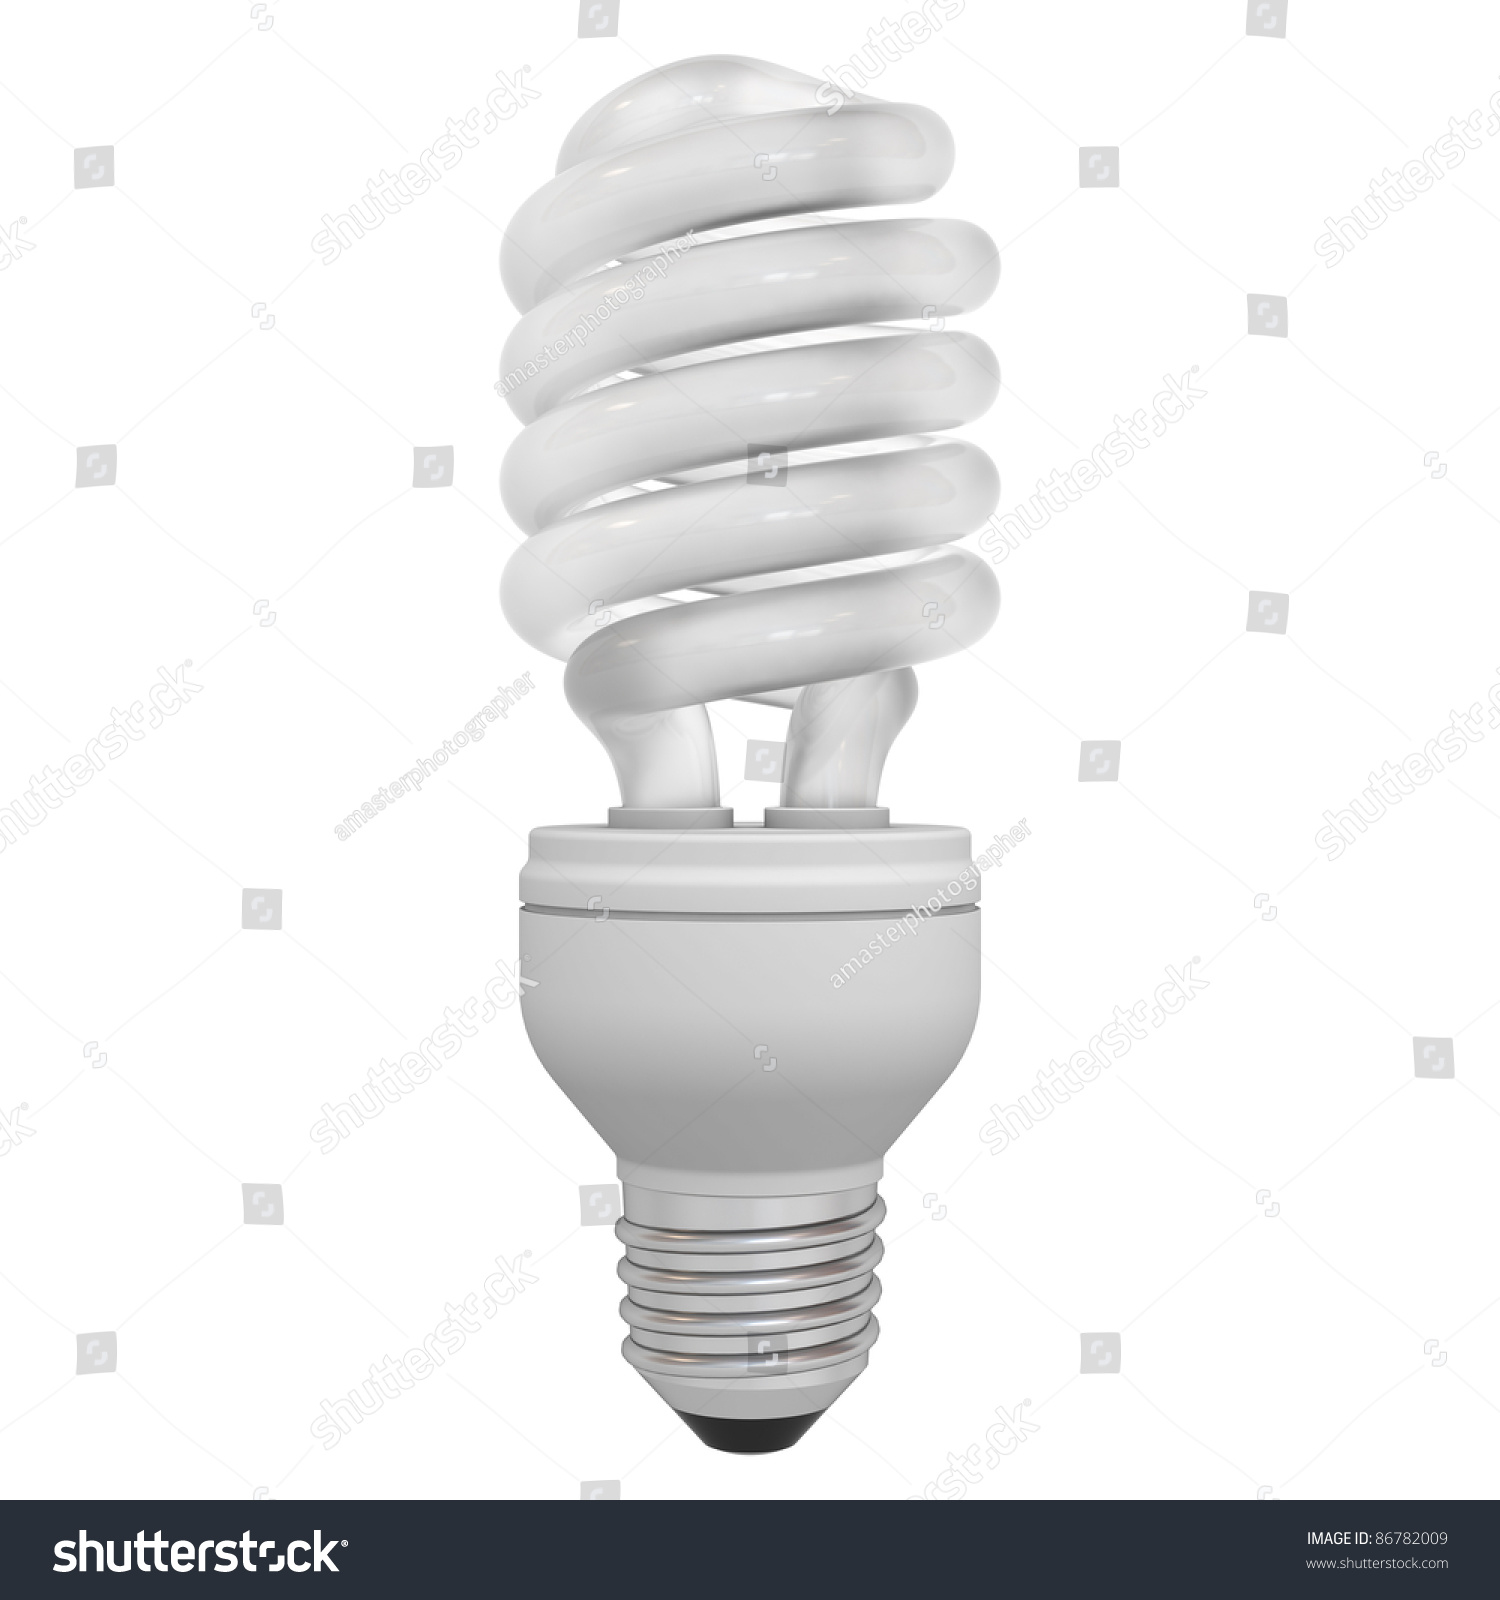 Energy Saving Compact Fluorescent Light Bulb Isolated On White Background Stock Photo 86782009